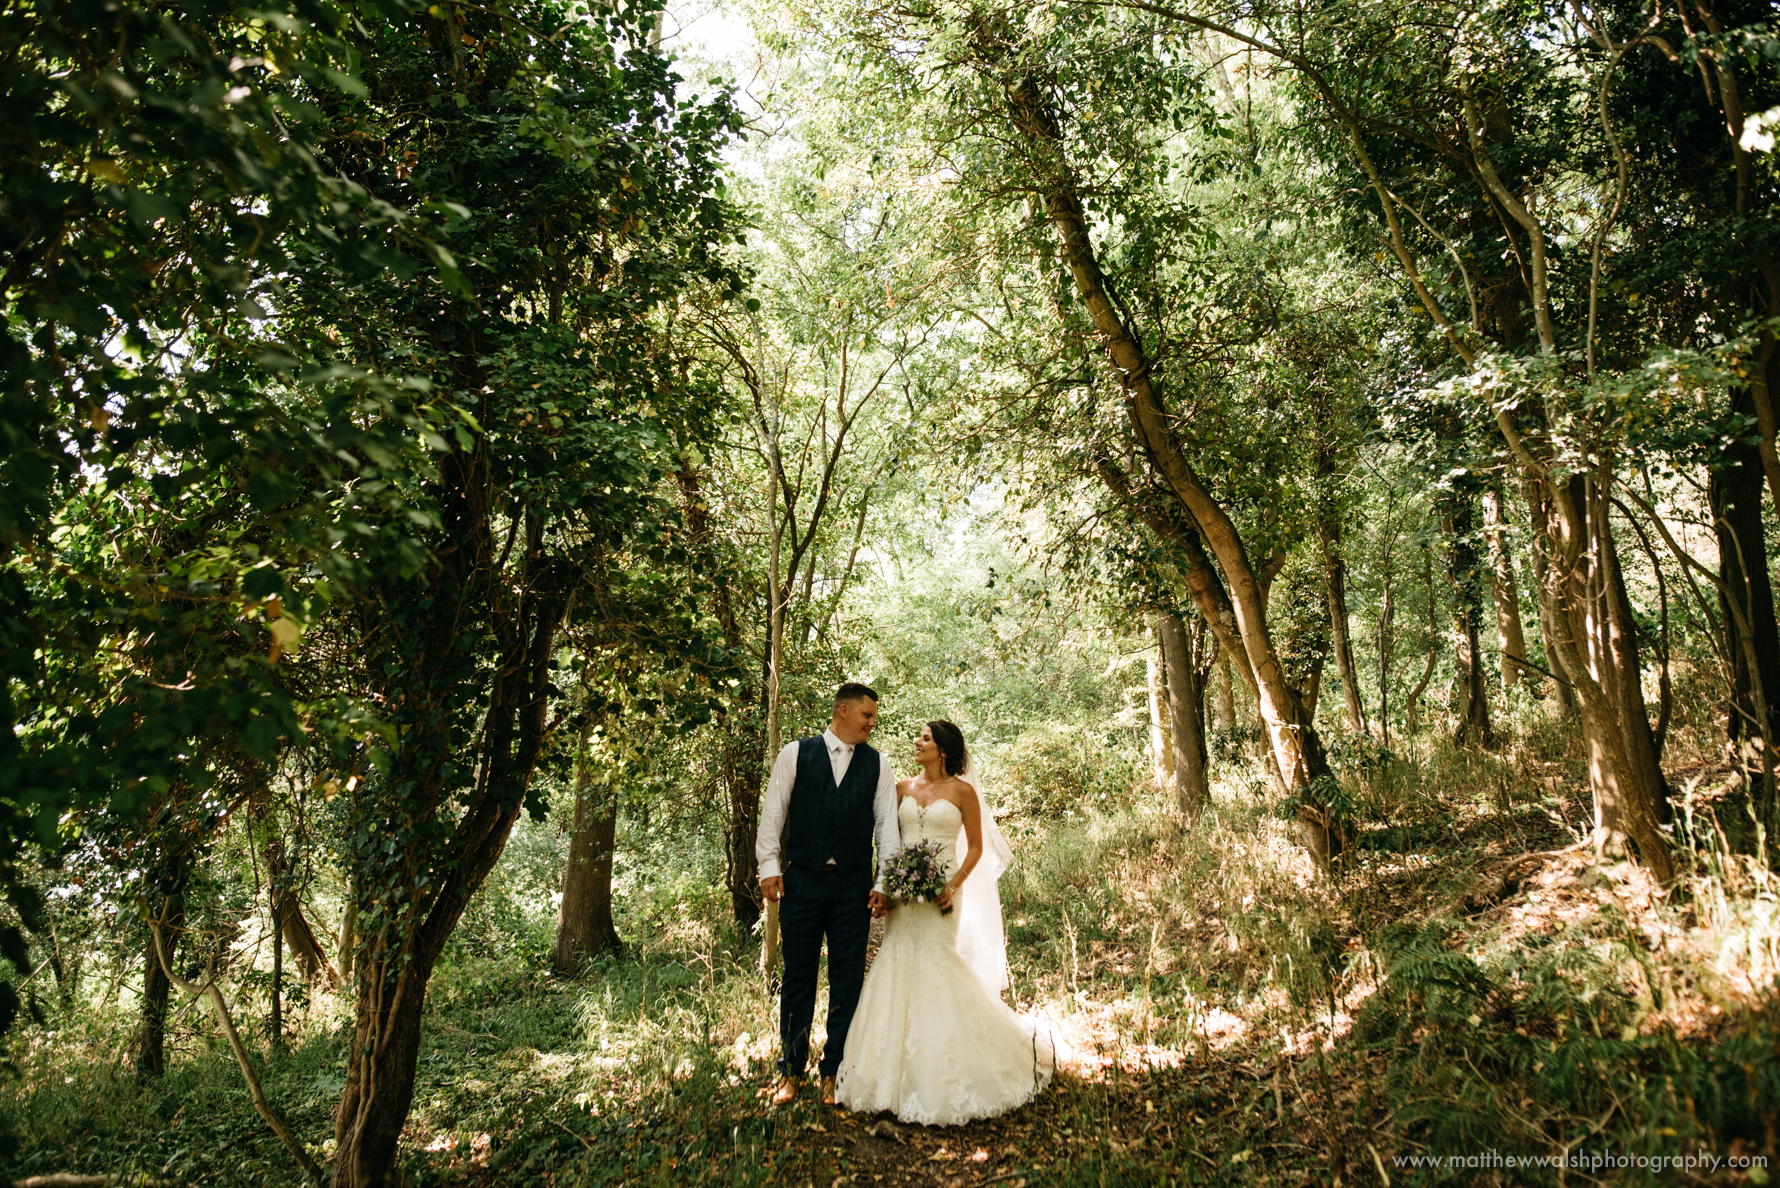 Touching moment as the new husband and wife stand under the artistic dappled light of the trees